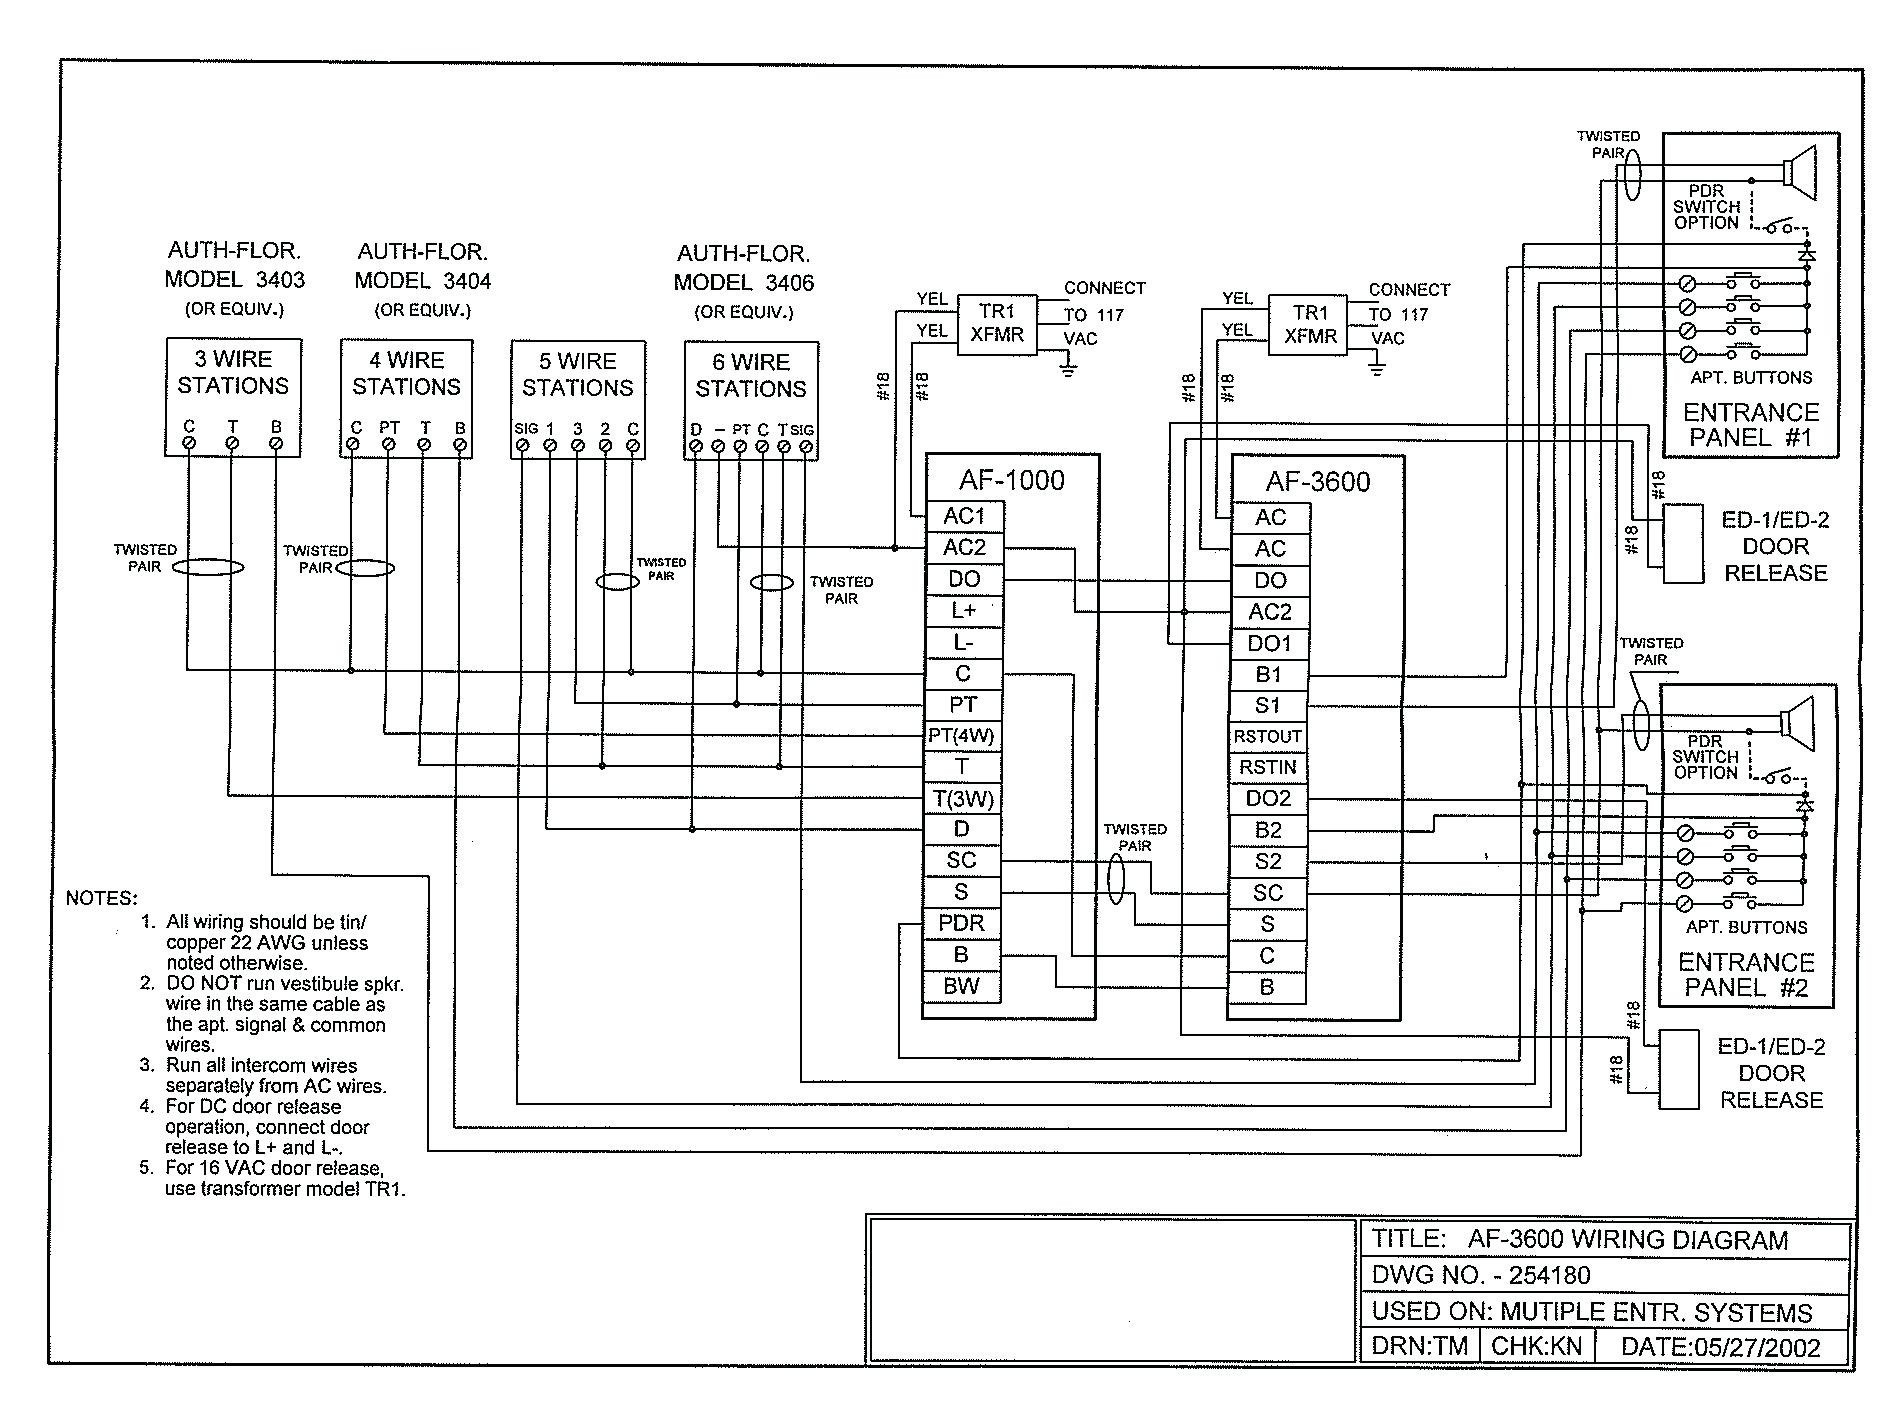 Telephone Wiring Diagram Outside Box Lovely Telephone Wiring Diagram Extension Australia Knob and Tube Old